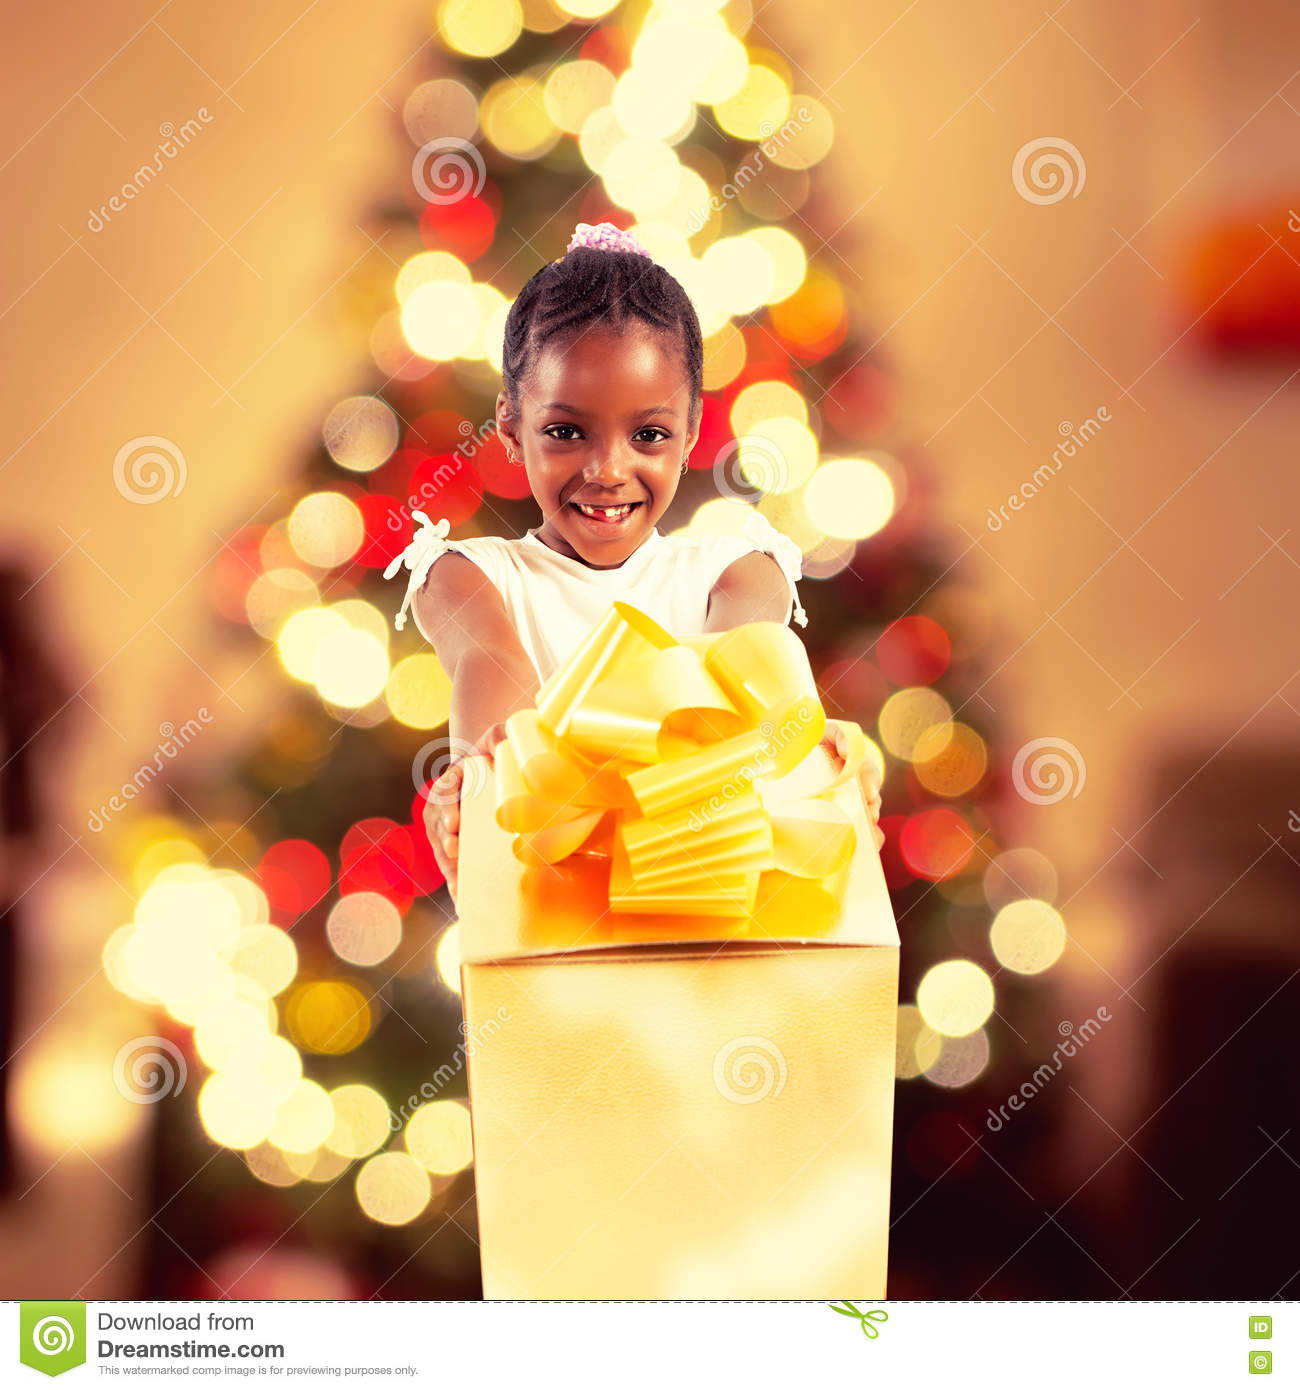 download christmas gifts for children stock photo image of child amazed 82214828